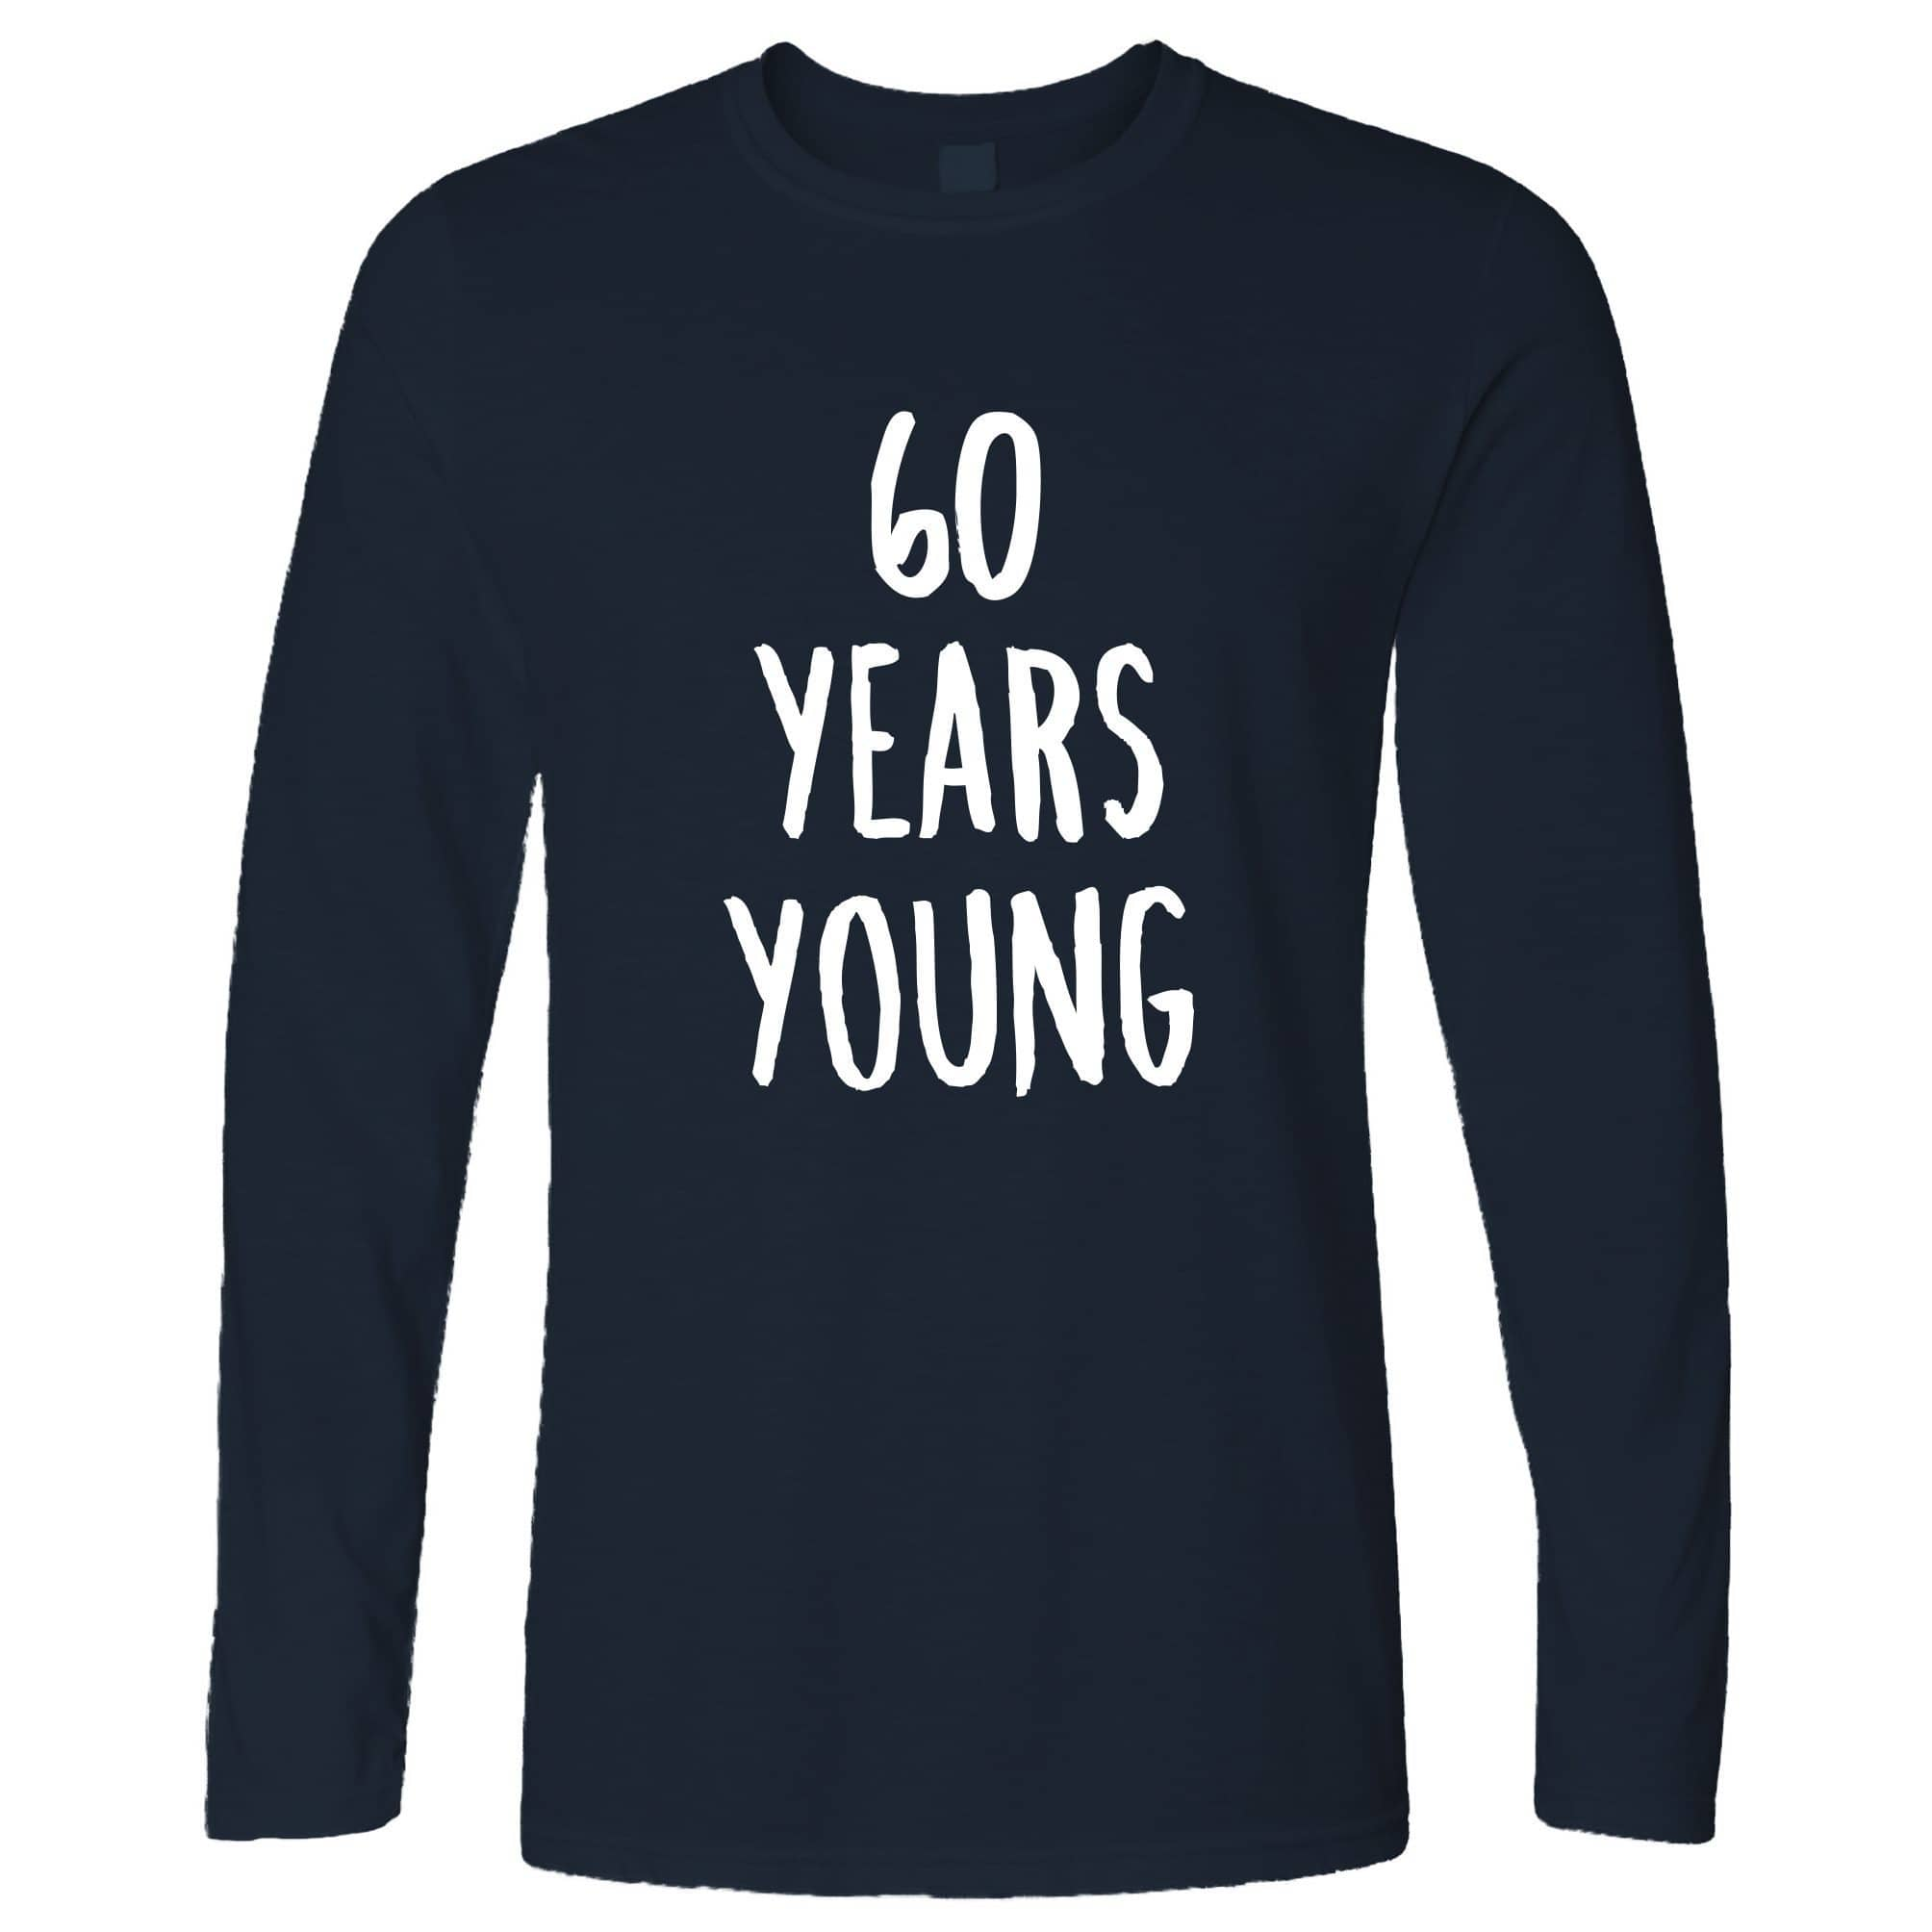 60th Birthday Joke Long Sleeve 60 Years Young Novelty Text T-Shirt